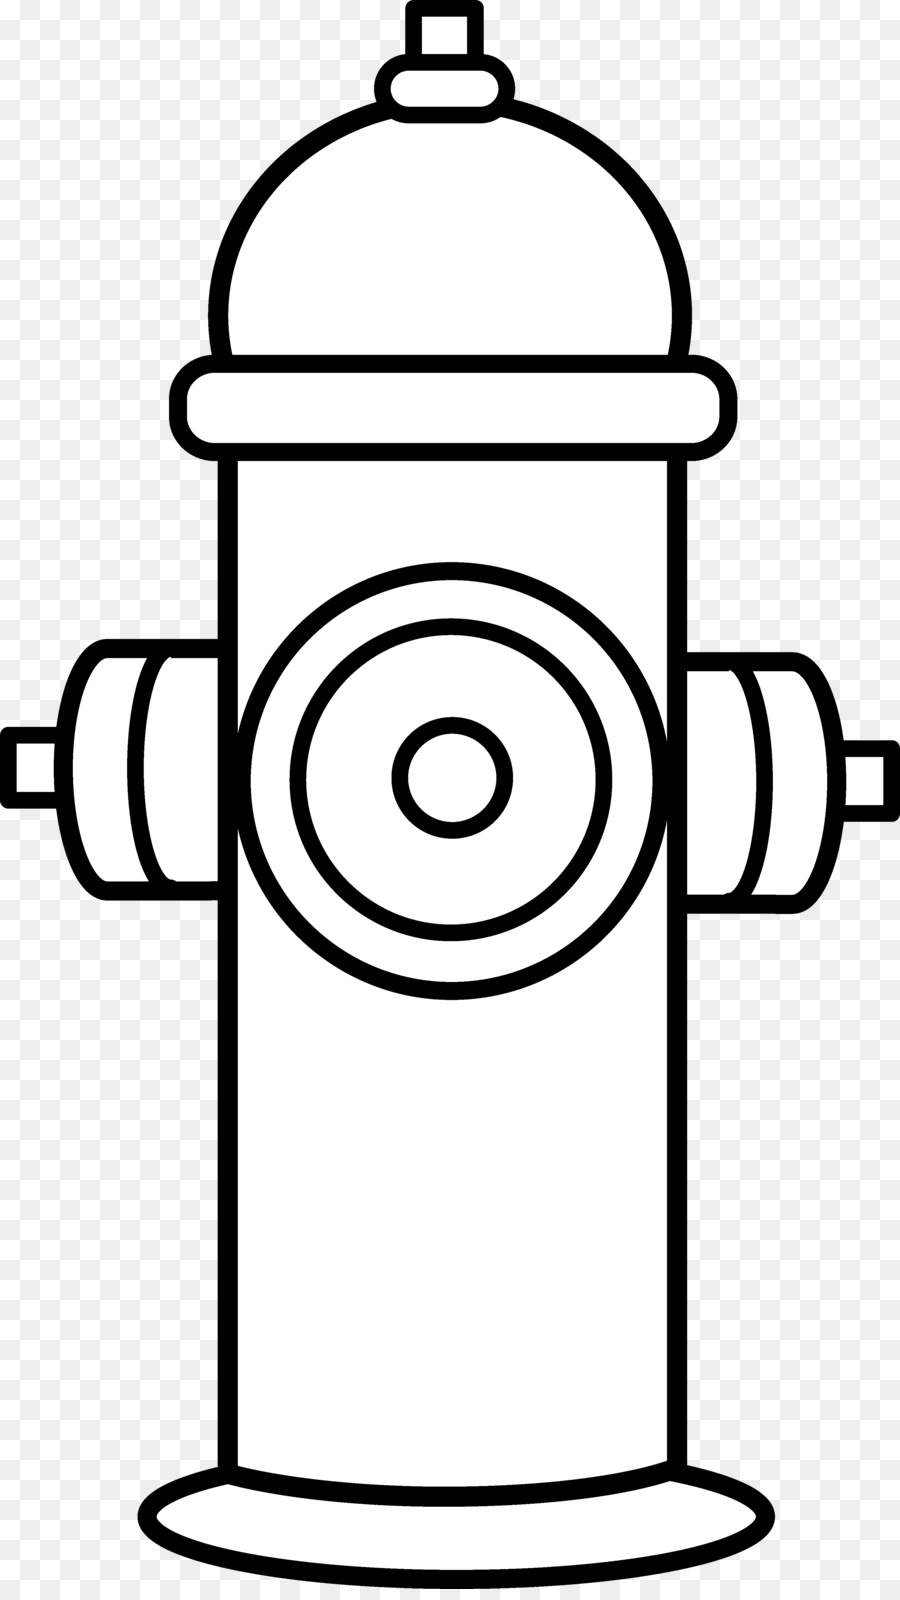 fire hydrant royalty free clip art fire line art png download rh kisspng com royalty free clipart images royalty free clipart images